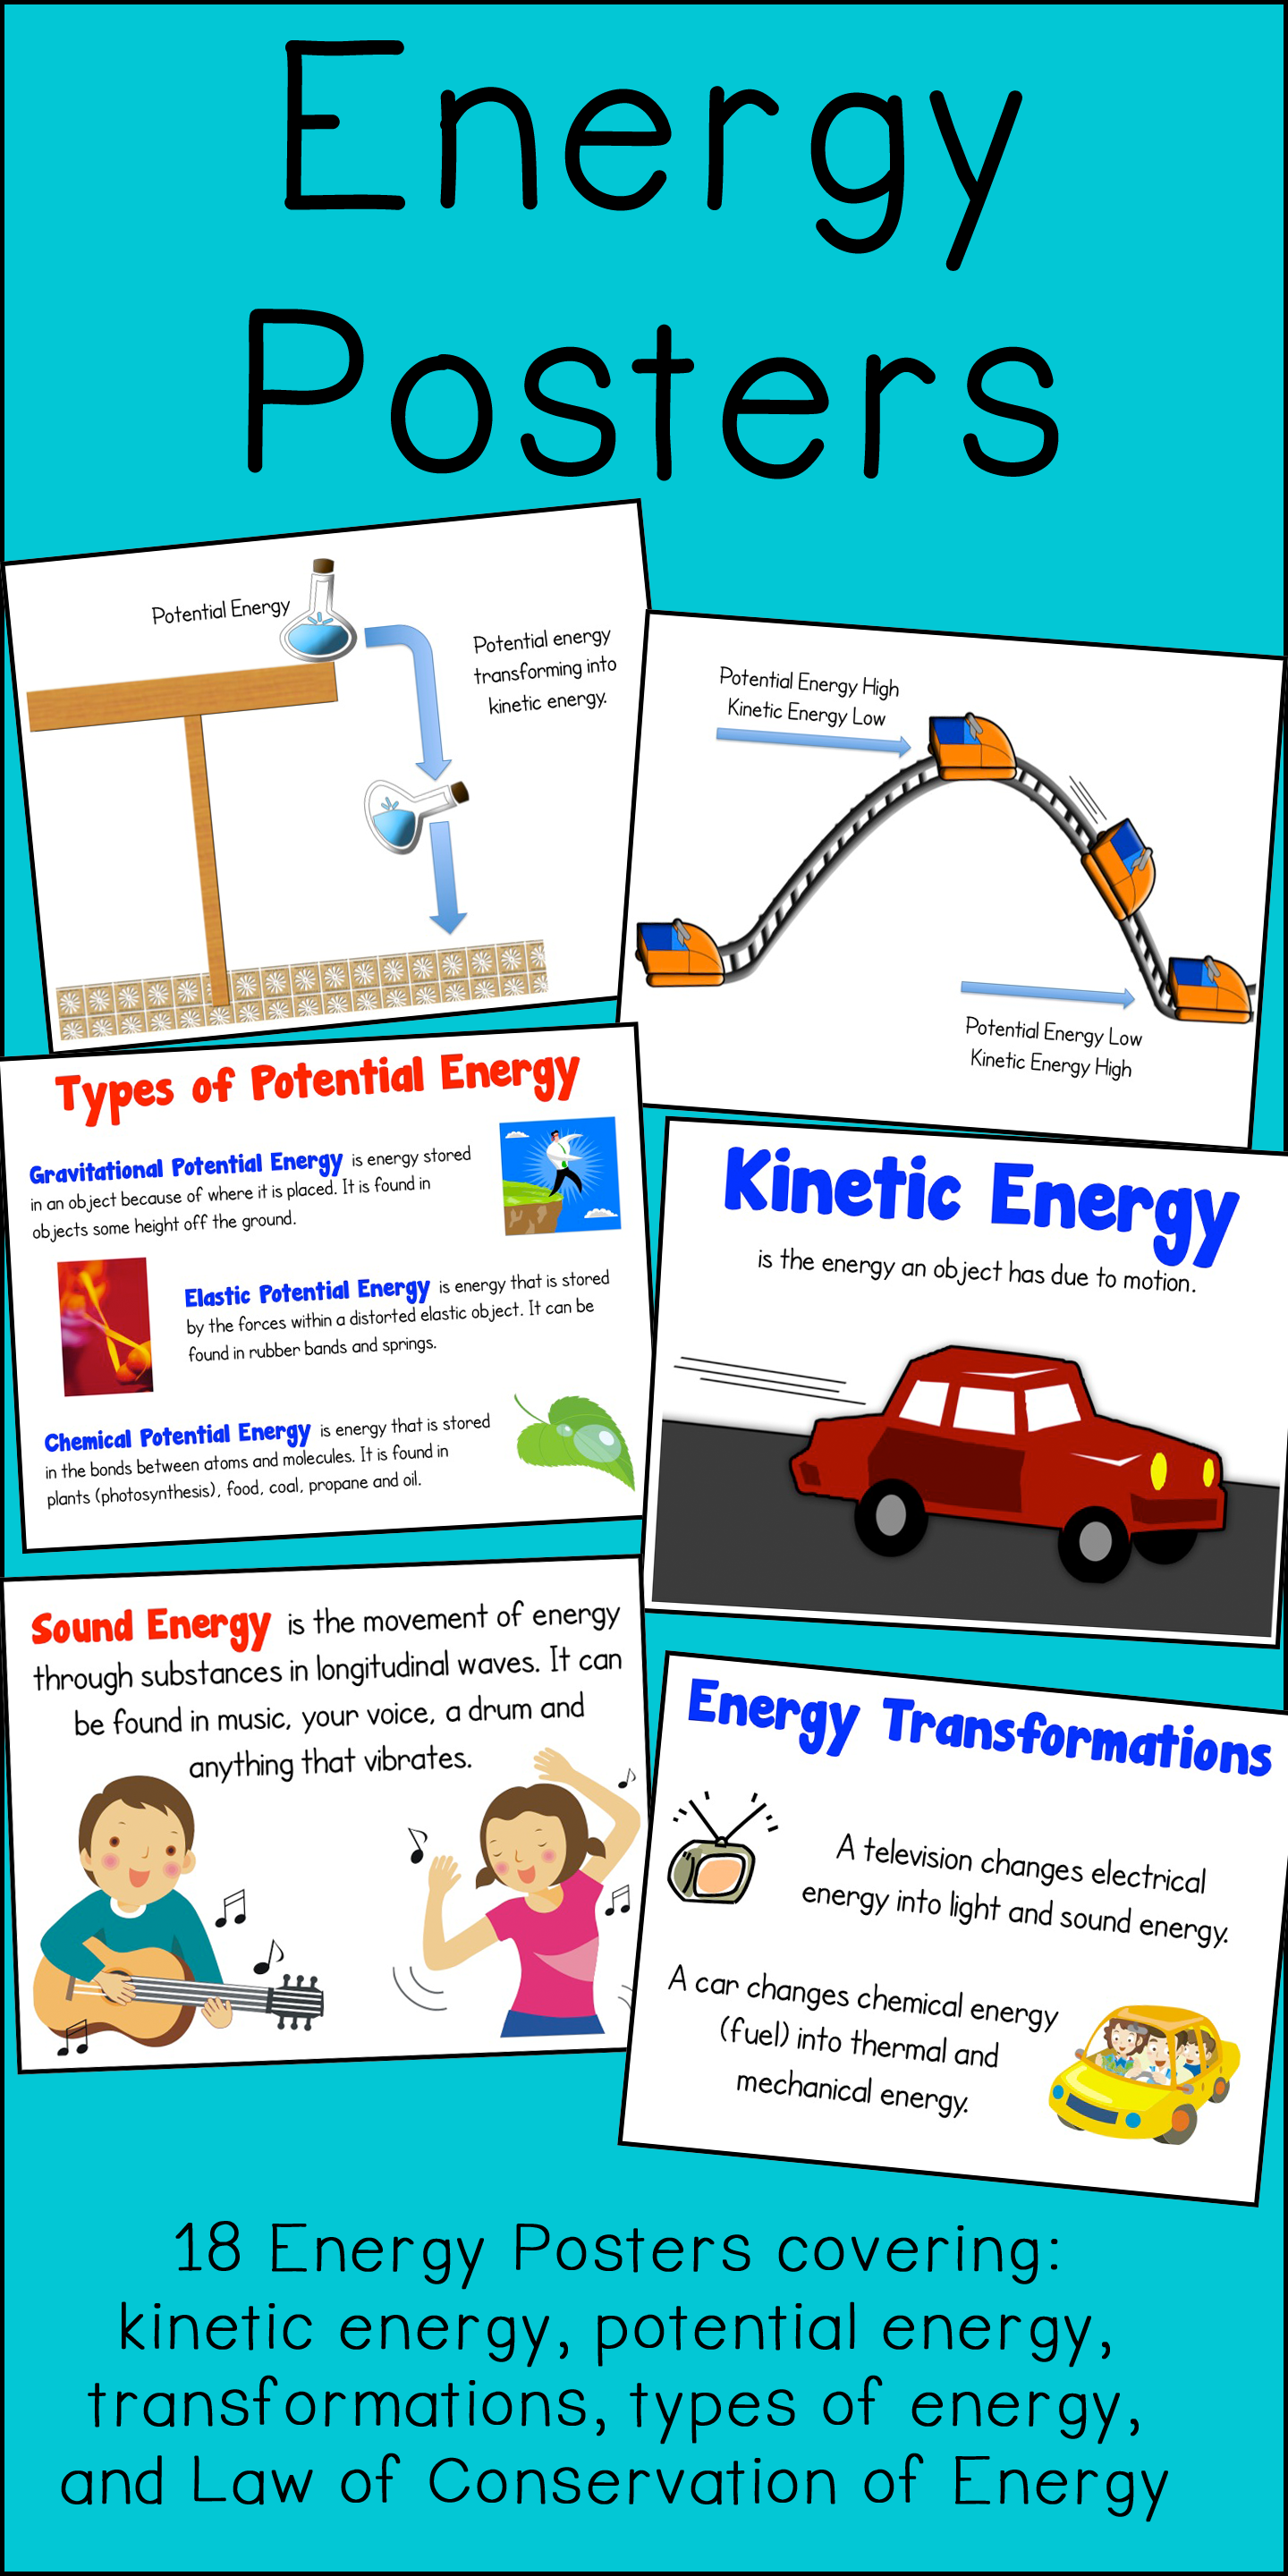 Toy Car Energy Transformations